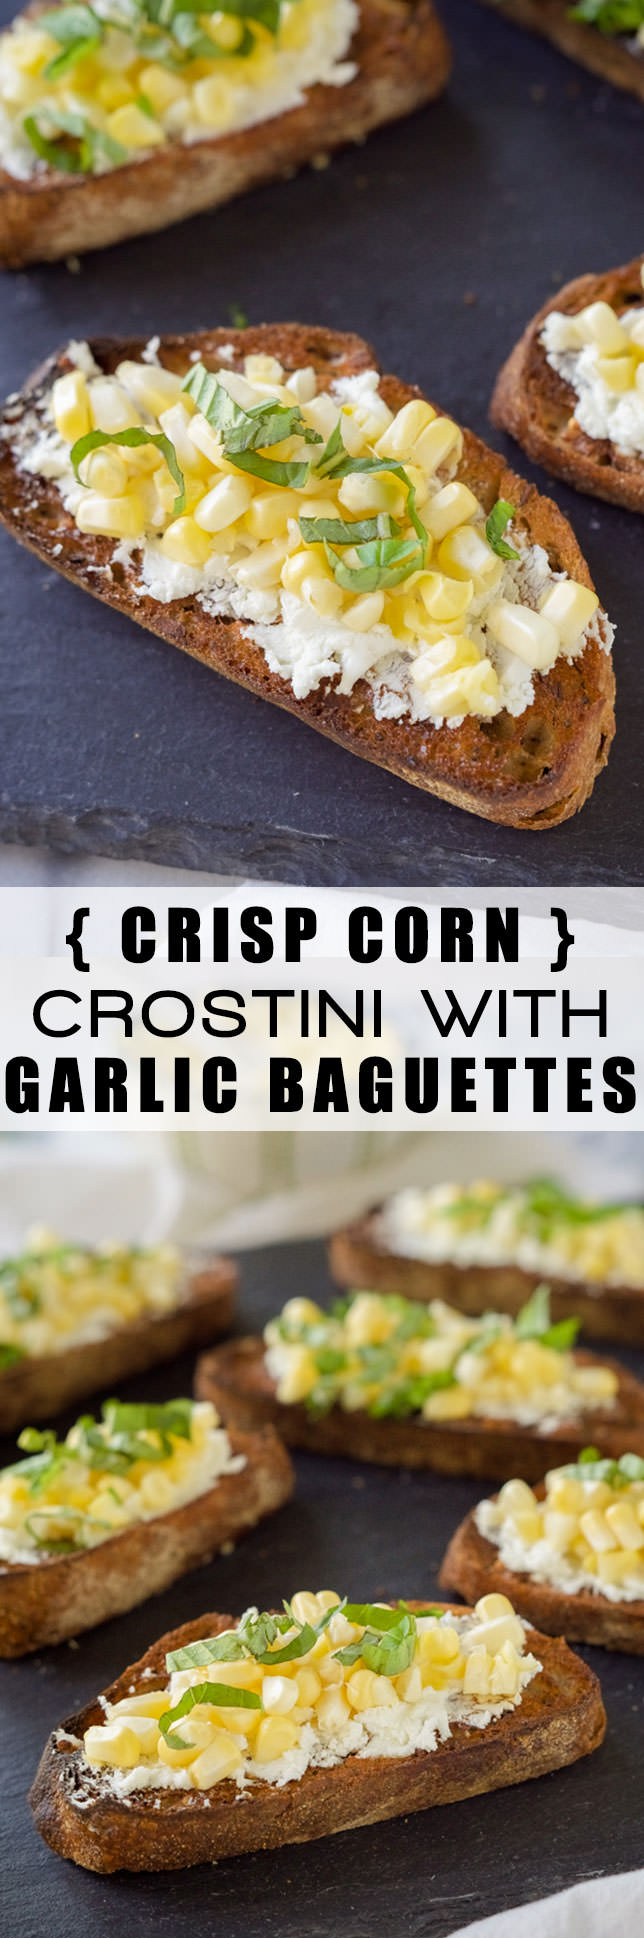 Crisp Corn Crostini on Garlic Baguettes are a quick, noncook appetizer that has fresh corn, garlic, creamy goat cheese all spread over a whole grain baguette!